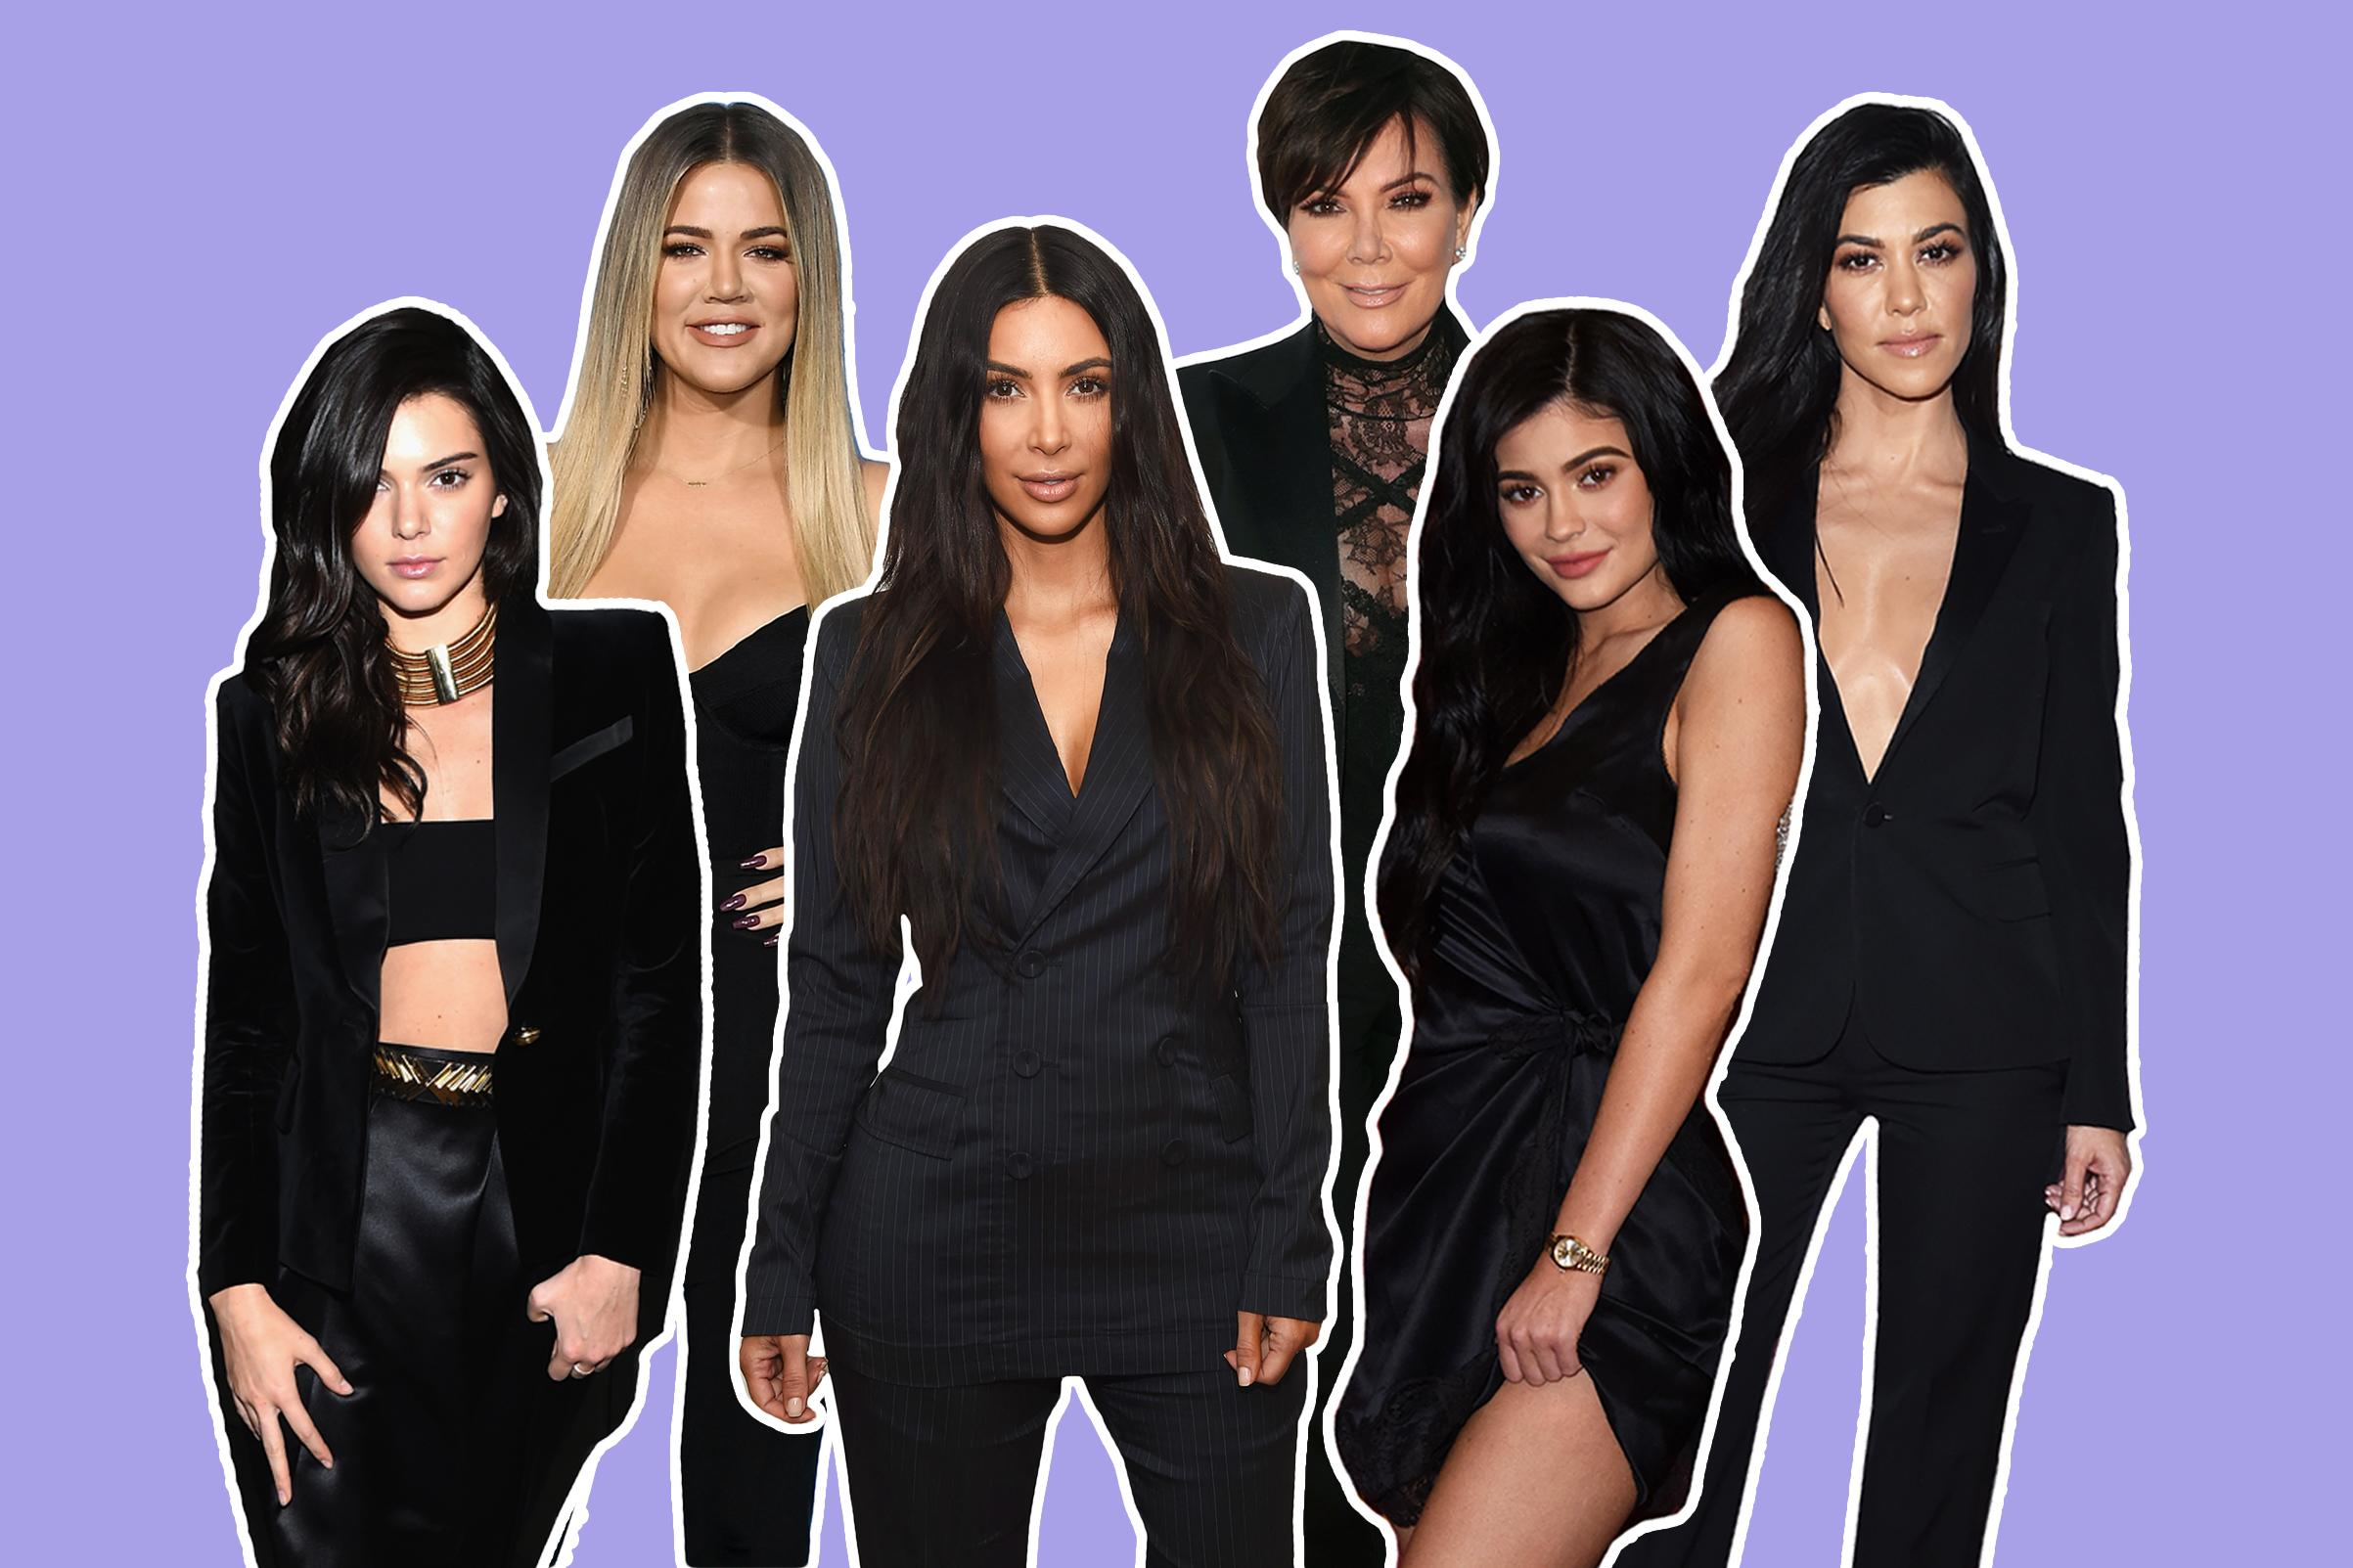 A Ranking of the Richest Women of the KardashianJenner Clan